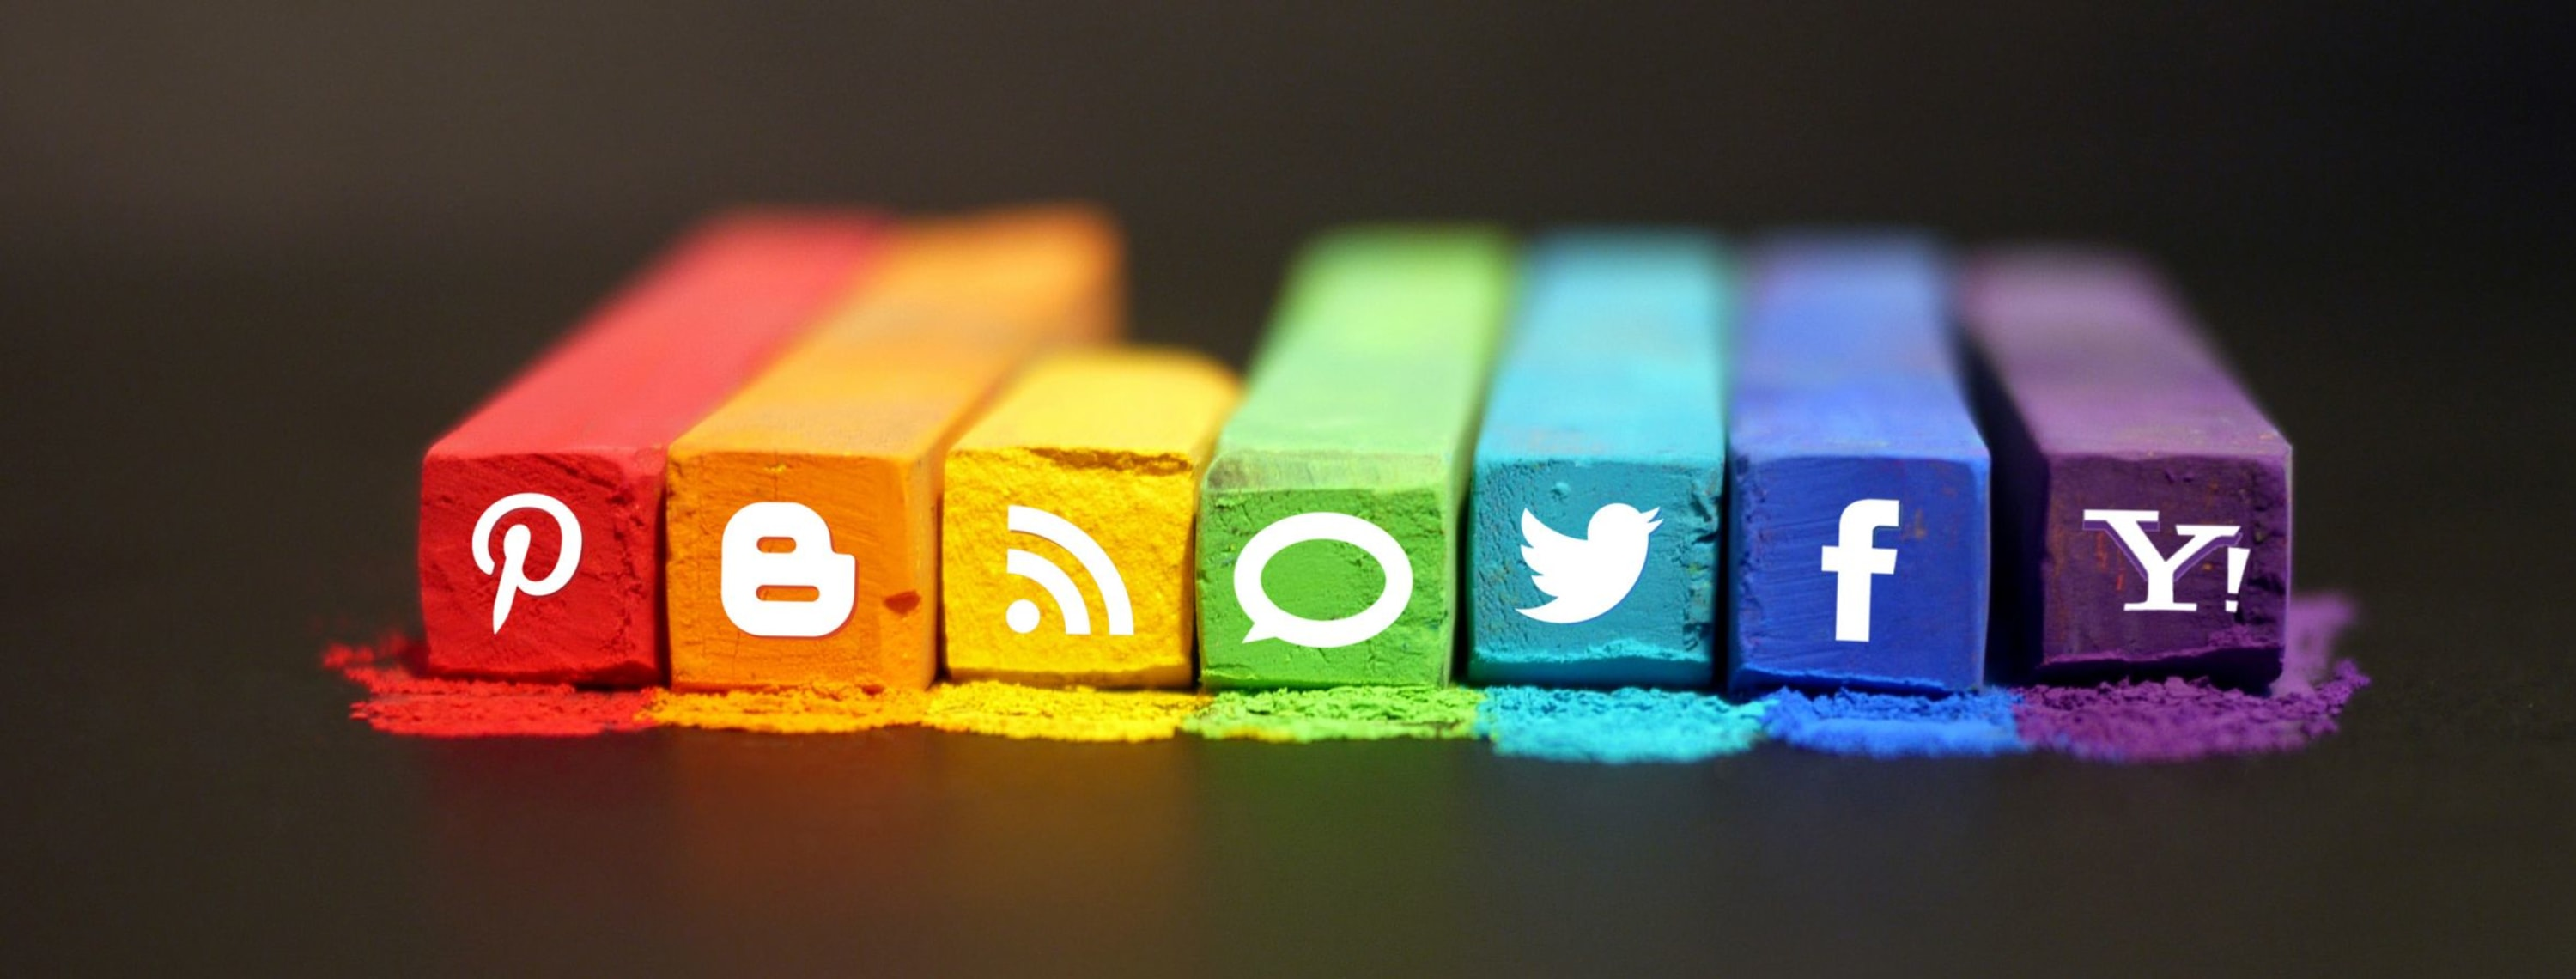 Creating engaging content for social media